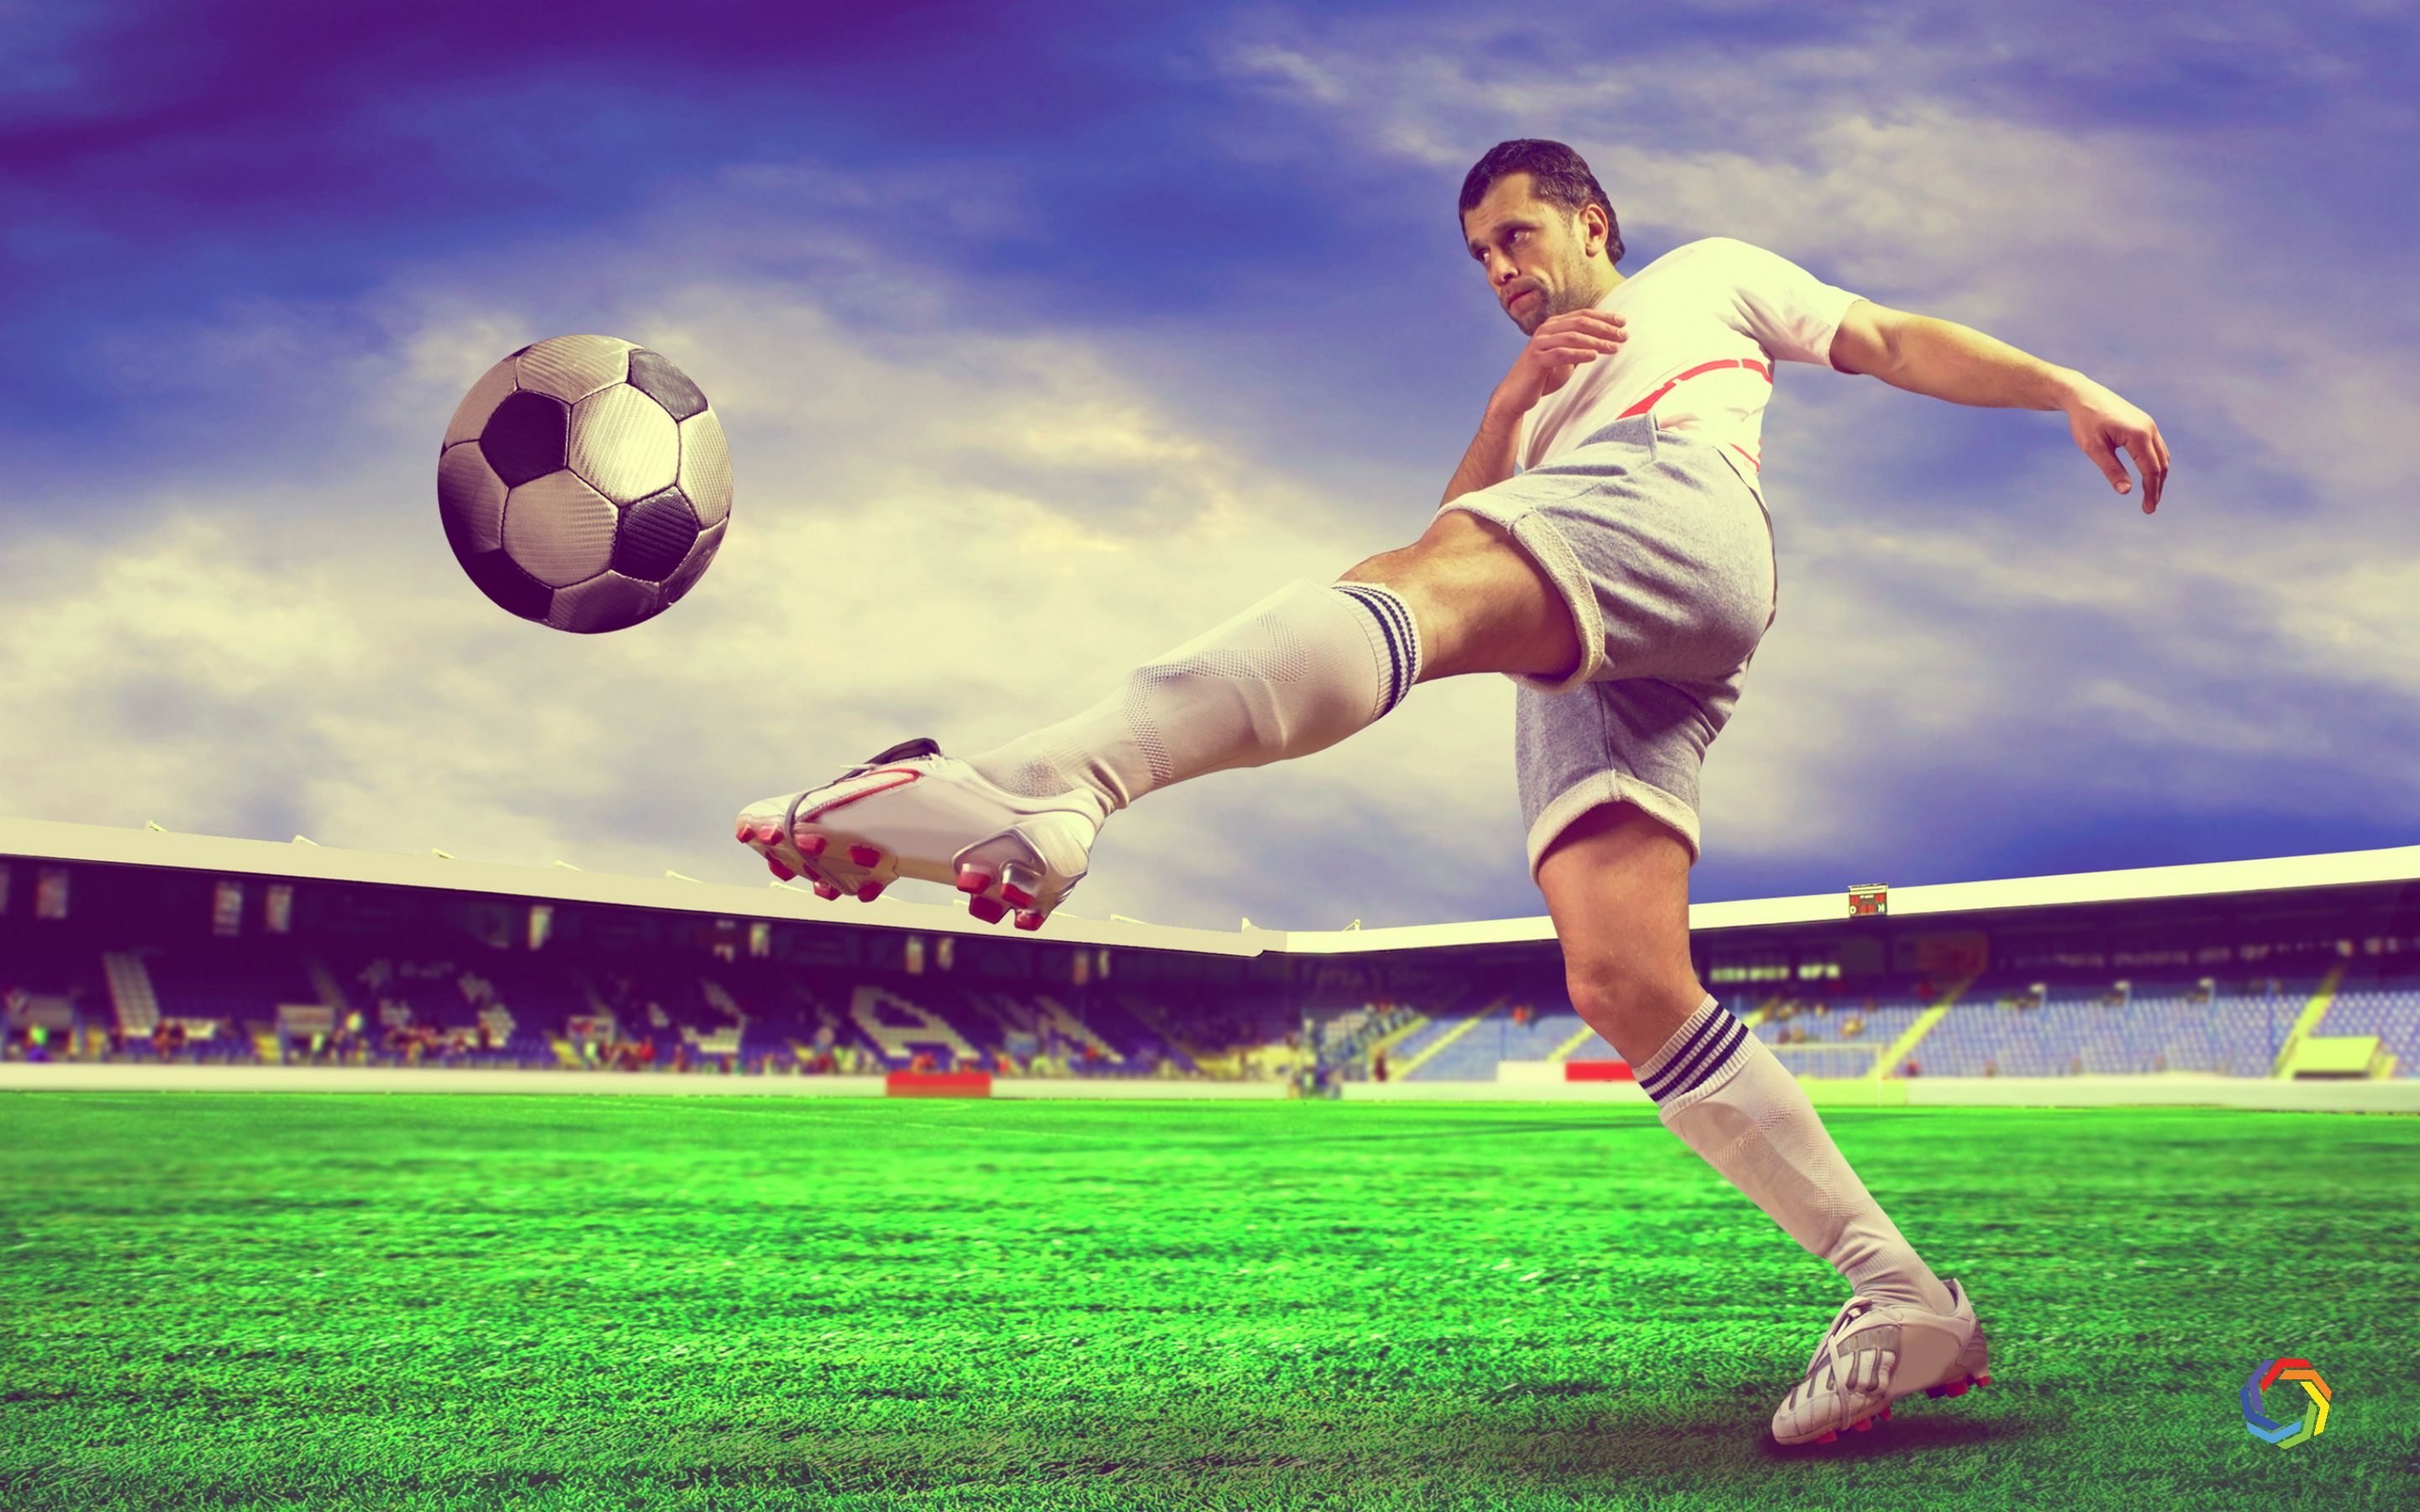 Sports Wallpapers Football